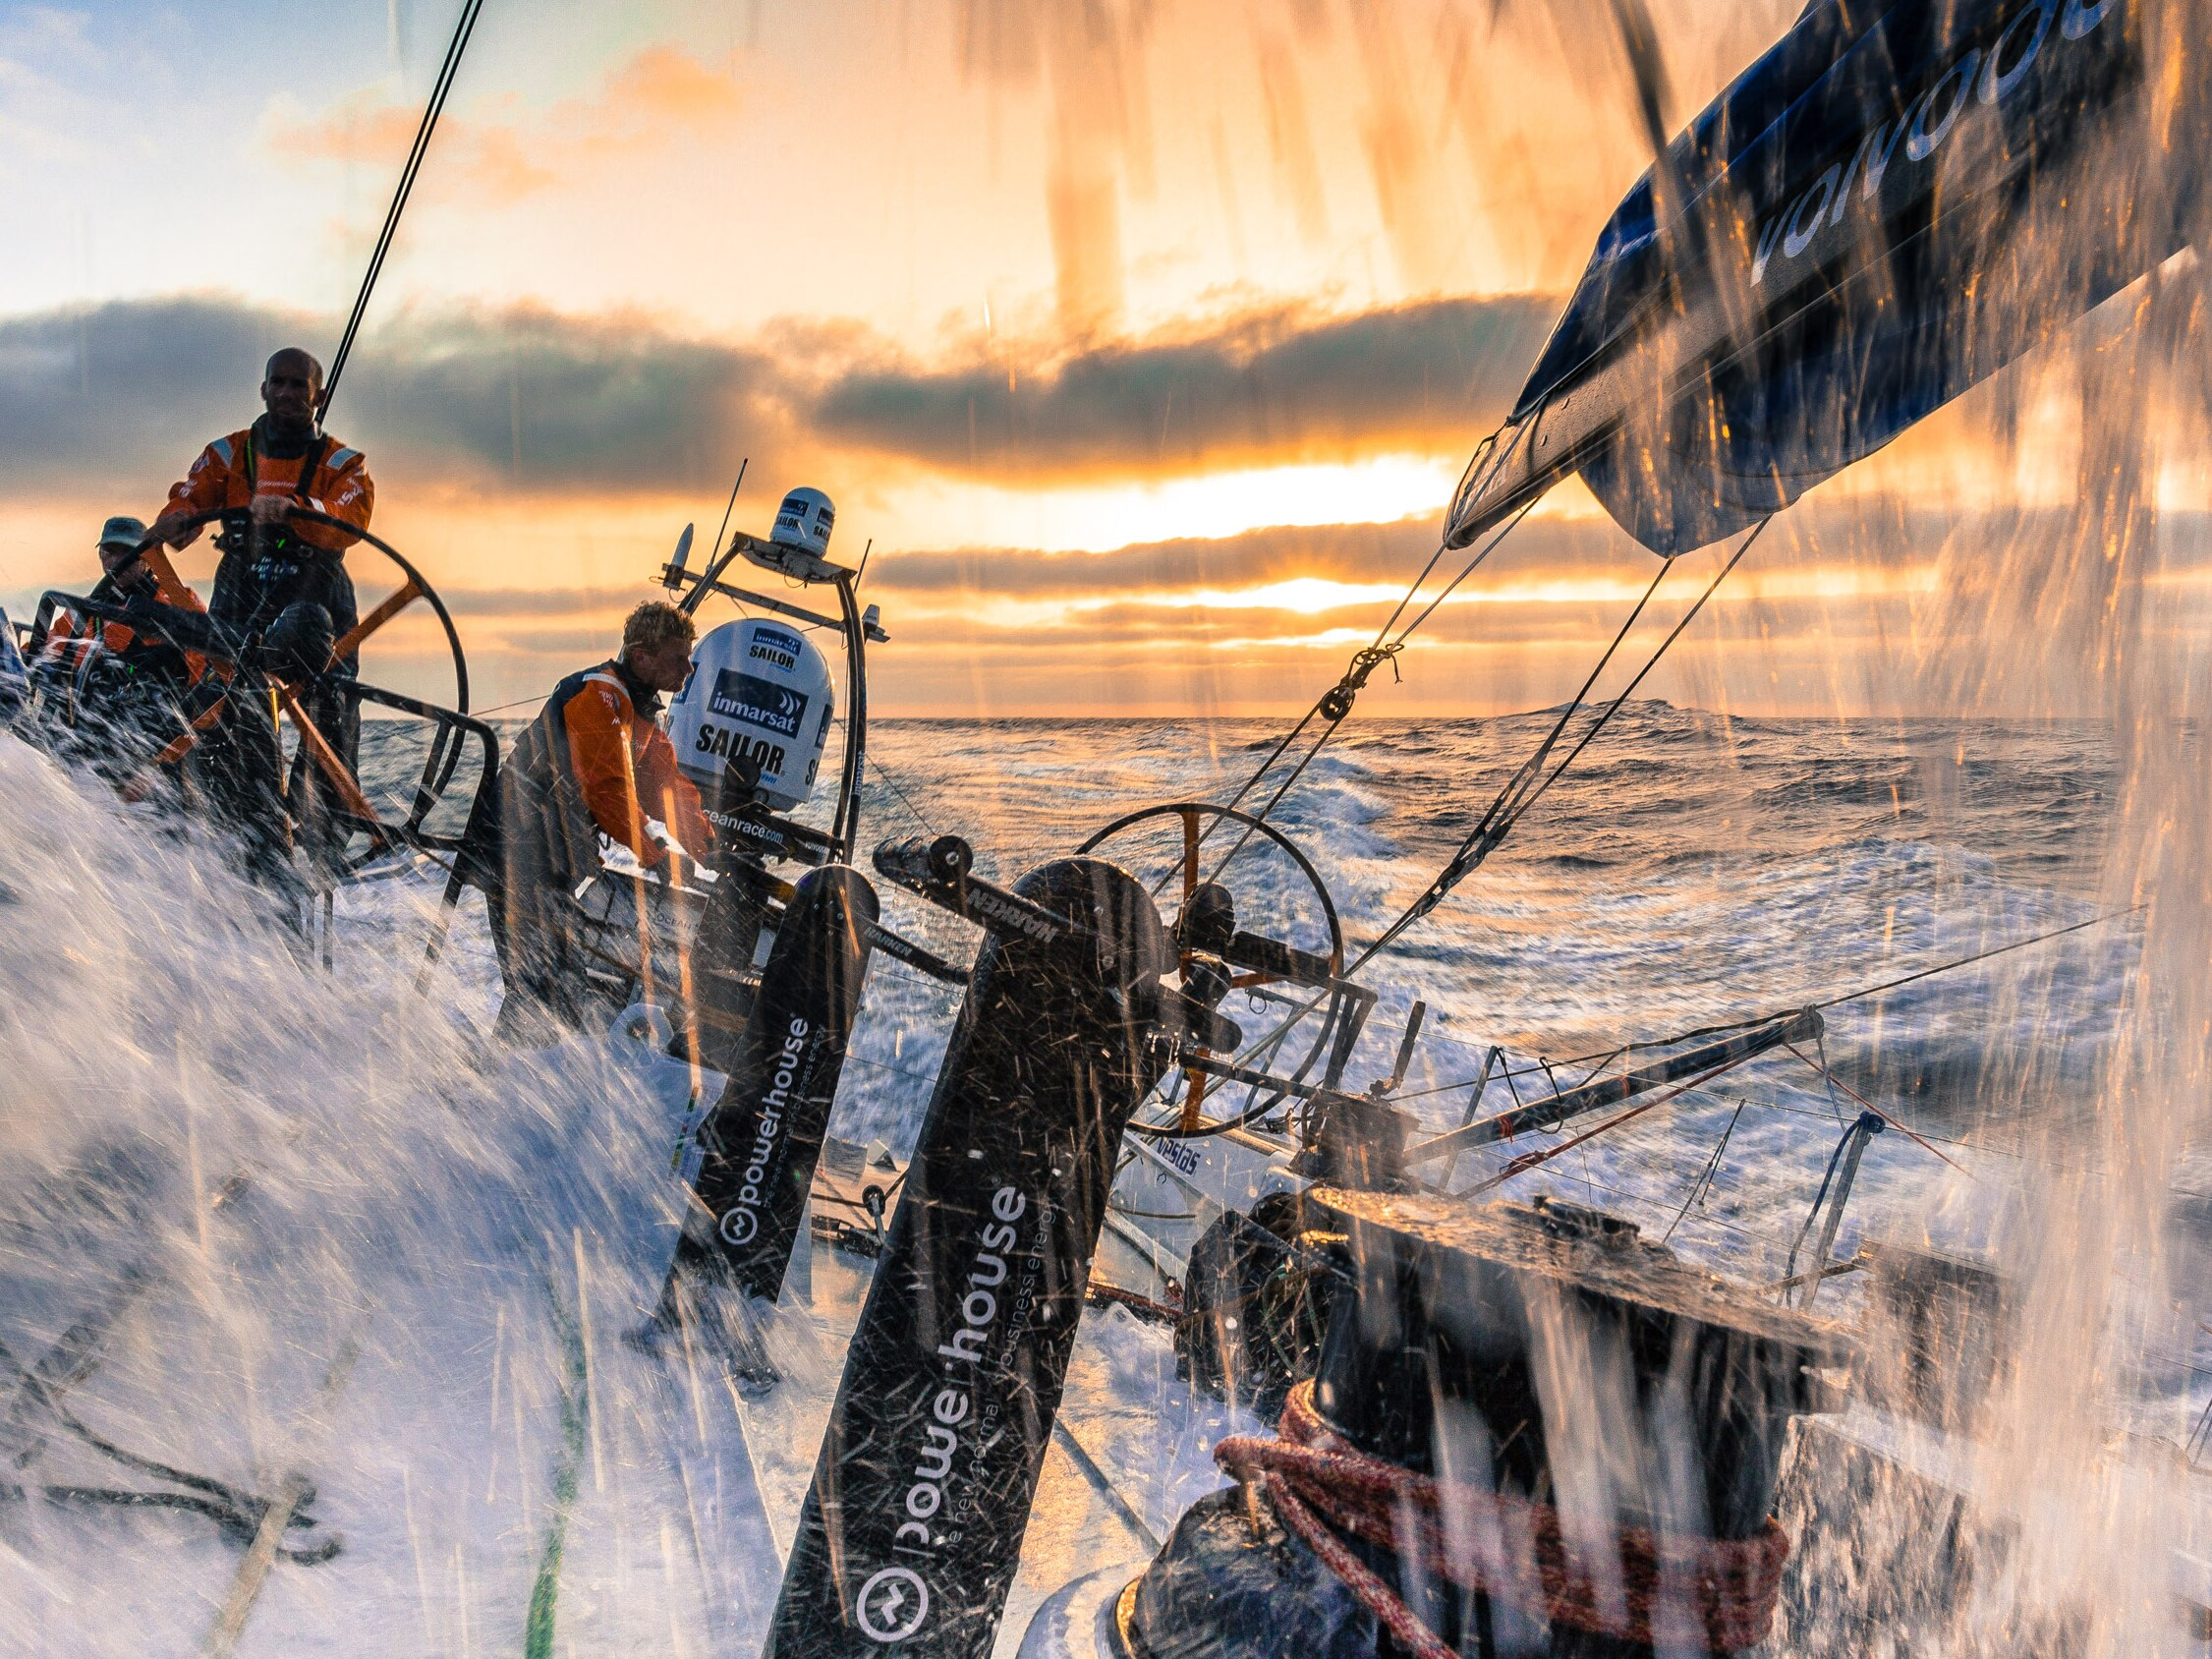 Waves crashing over the deck of a Volvo Ocean Race 65 yacht